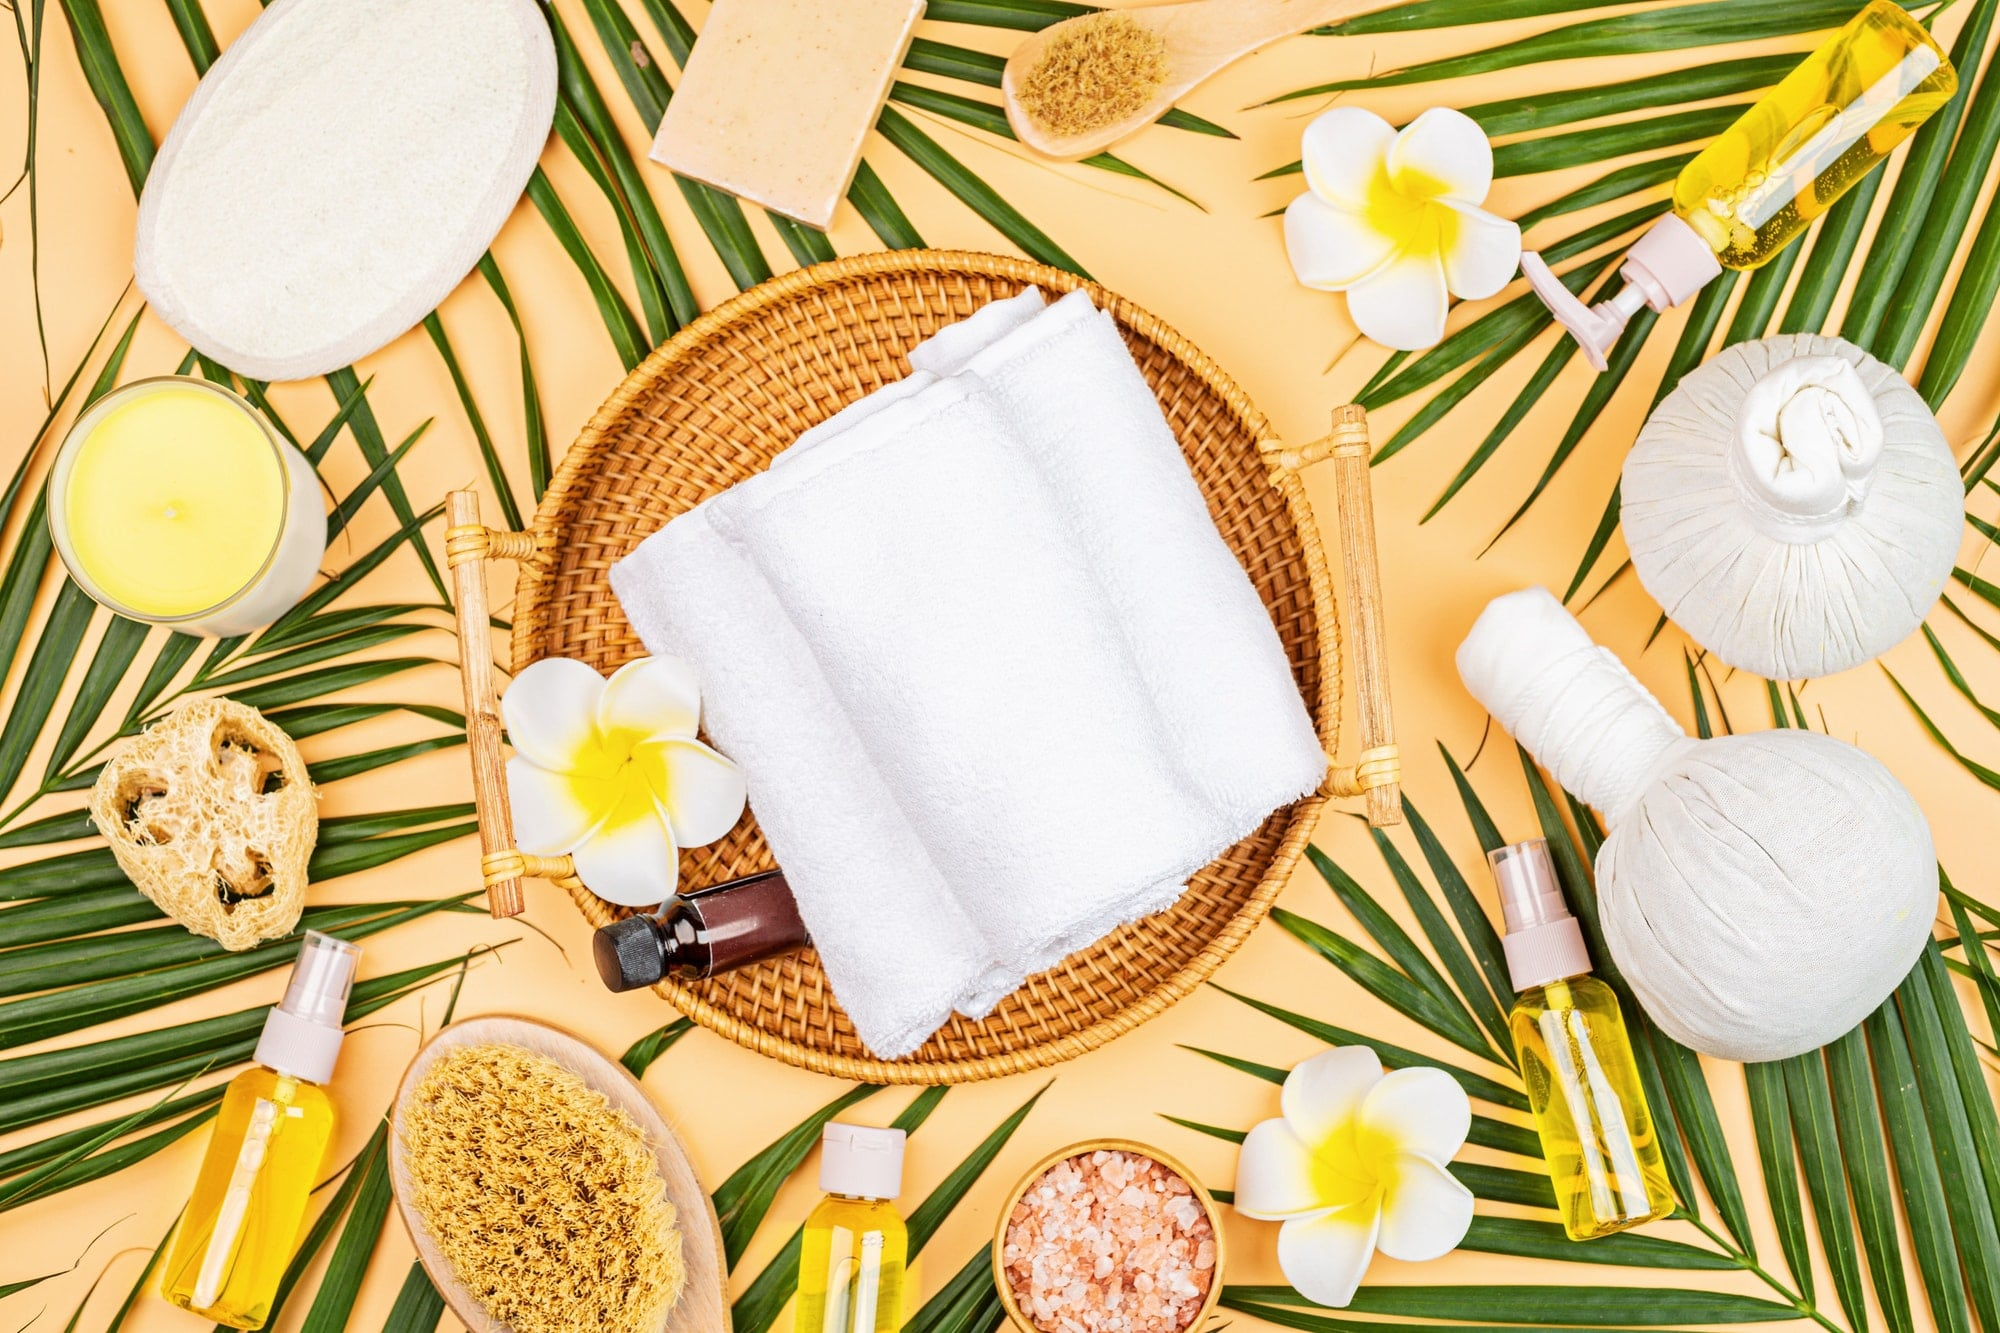 Spa massage Aromatherapy body care background. Spa herbal balls, cosmetics, towel and tropical leaf